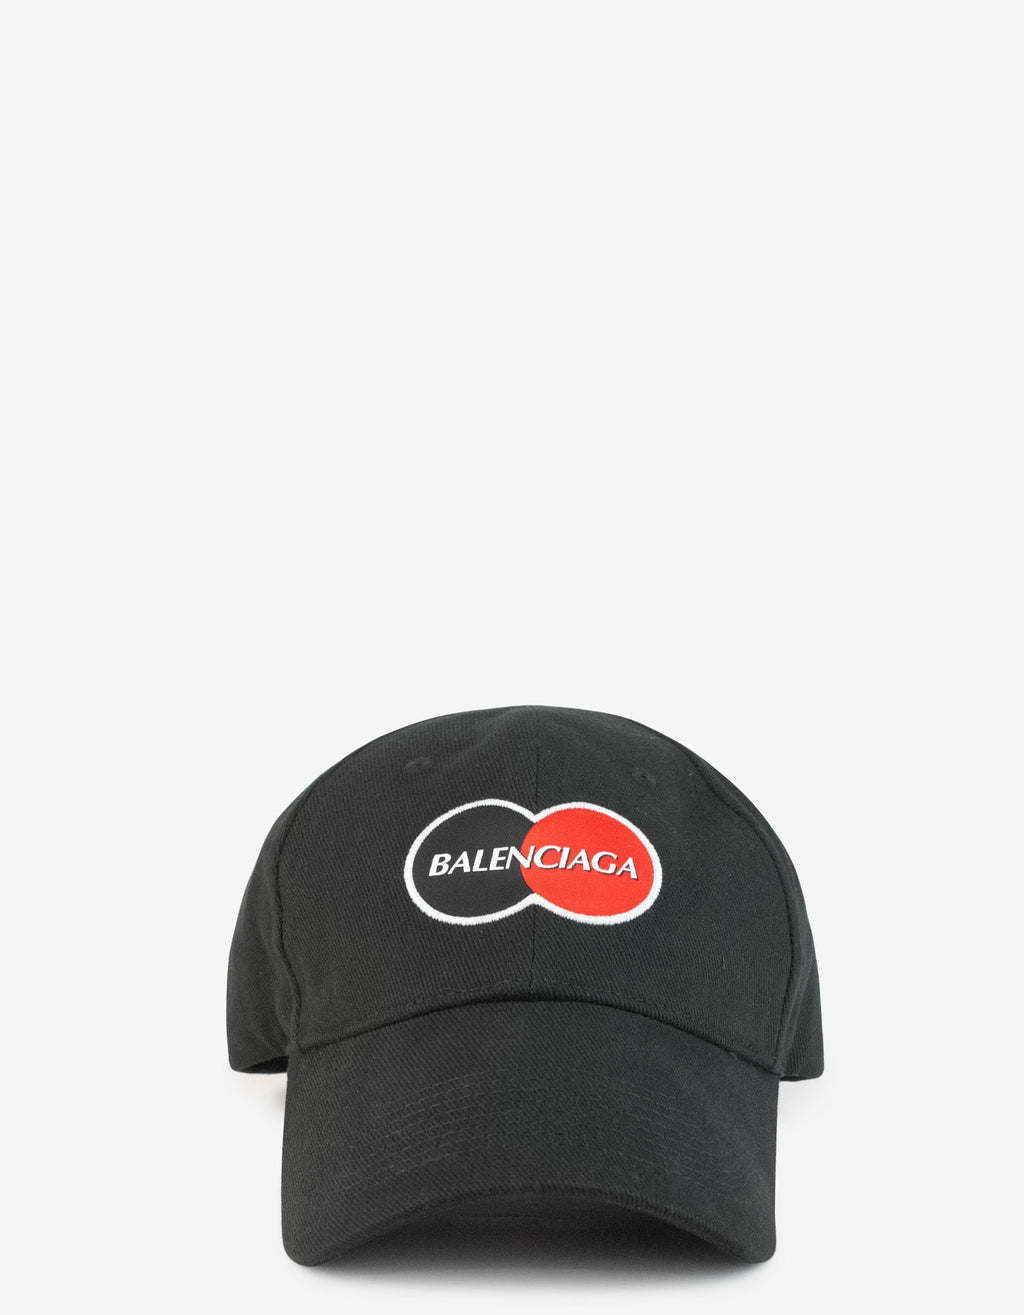 Black Uniform Baseball Cap -